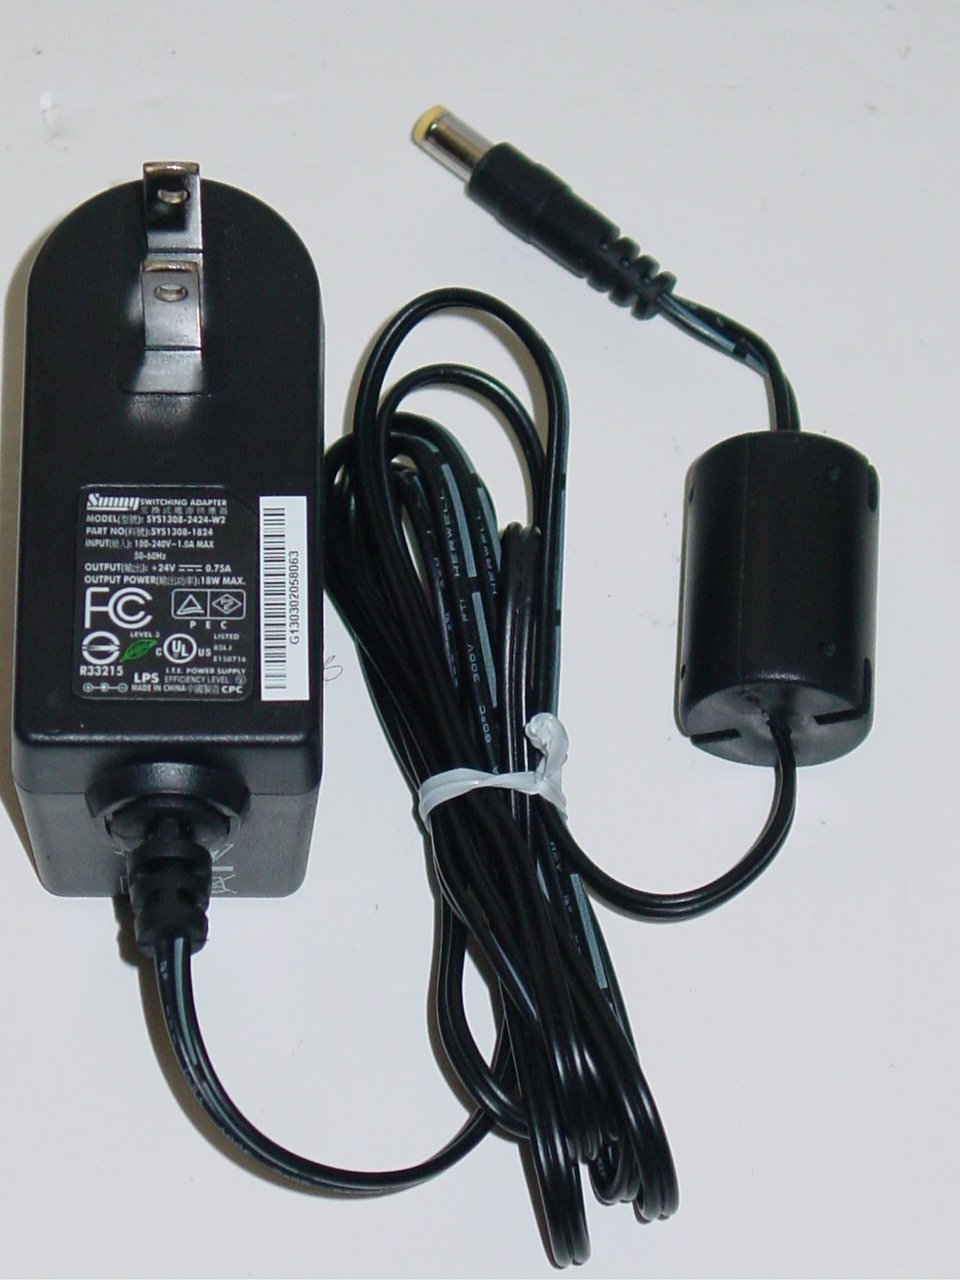 Sunny SYS1308-2424-W2 AC Adapter 24V 0.75A